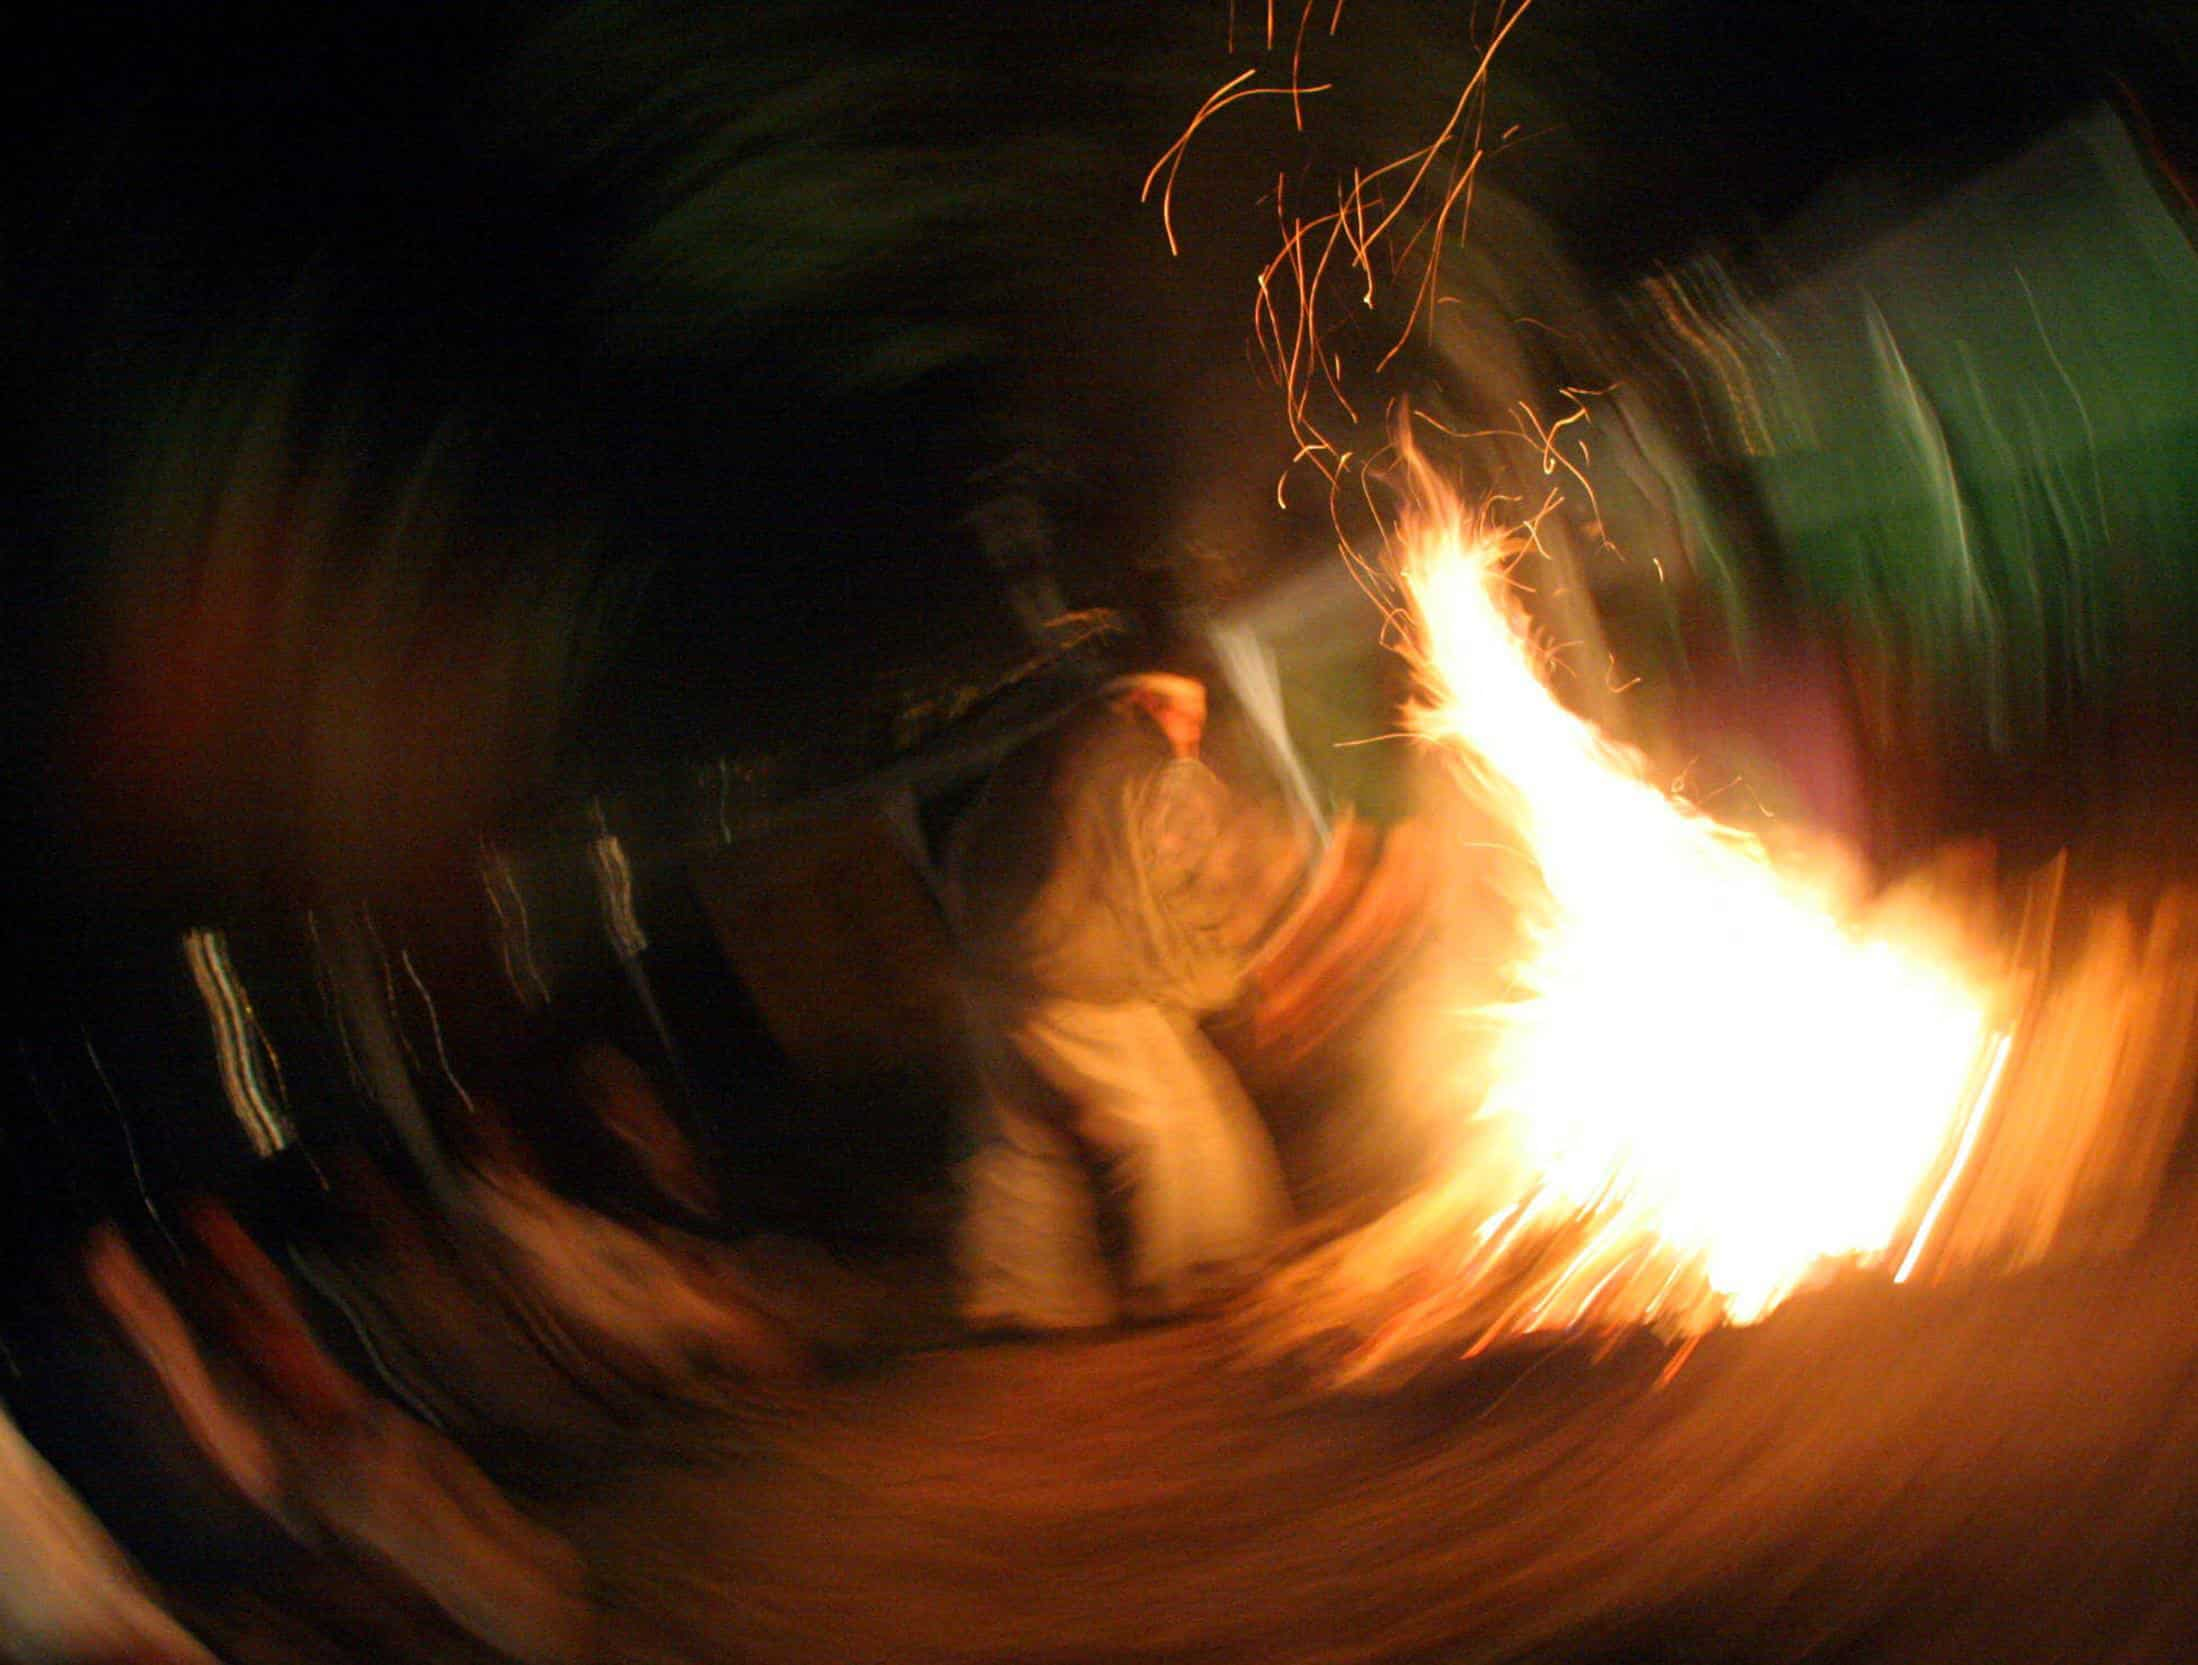 Ayahuasca ceremony in Ecuador.